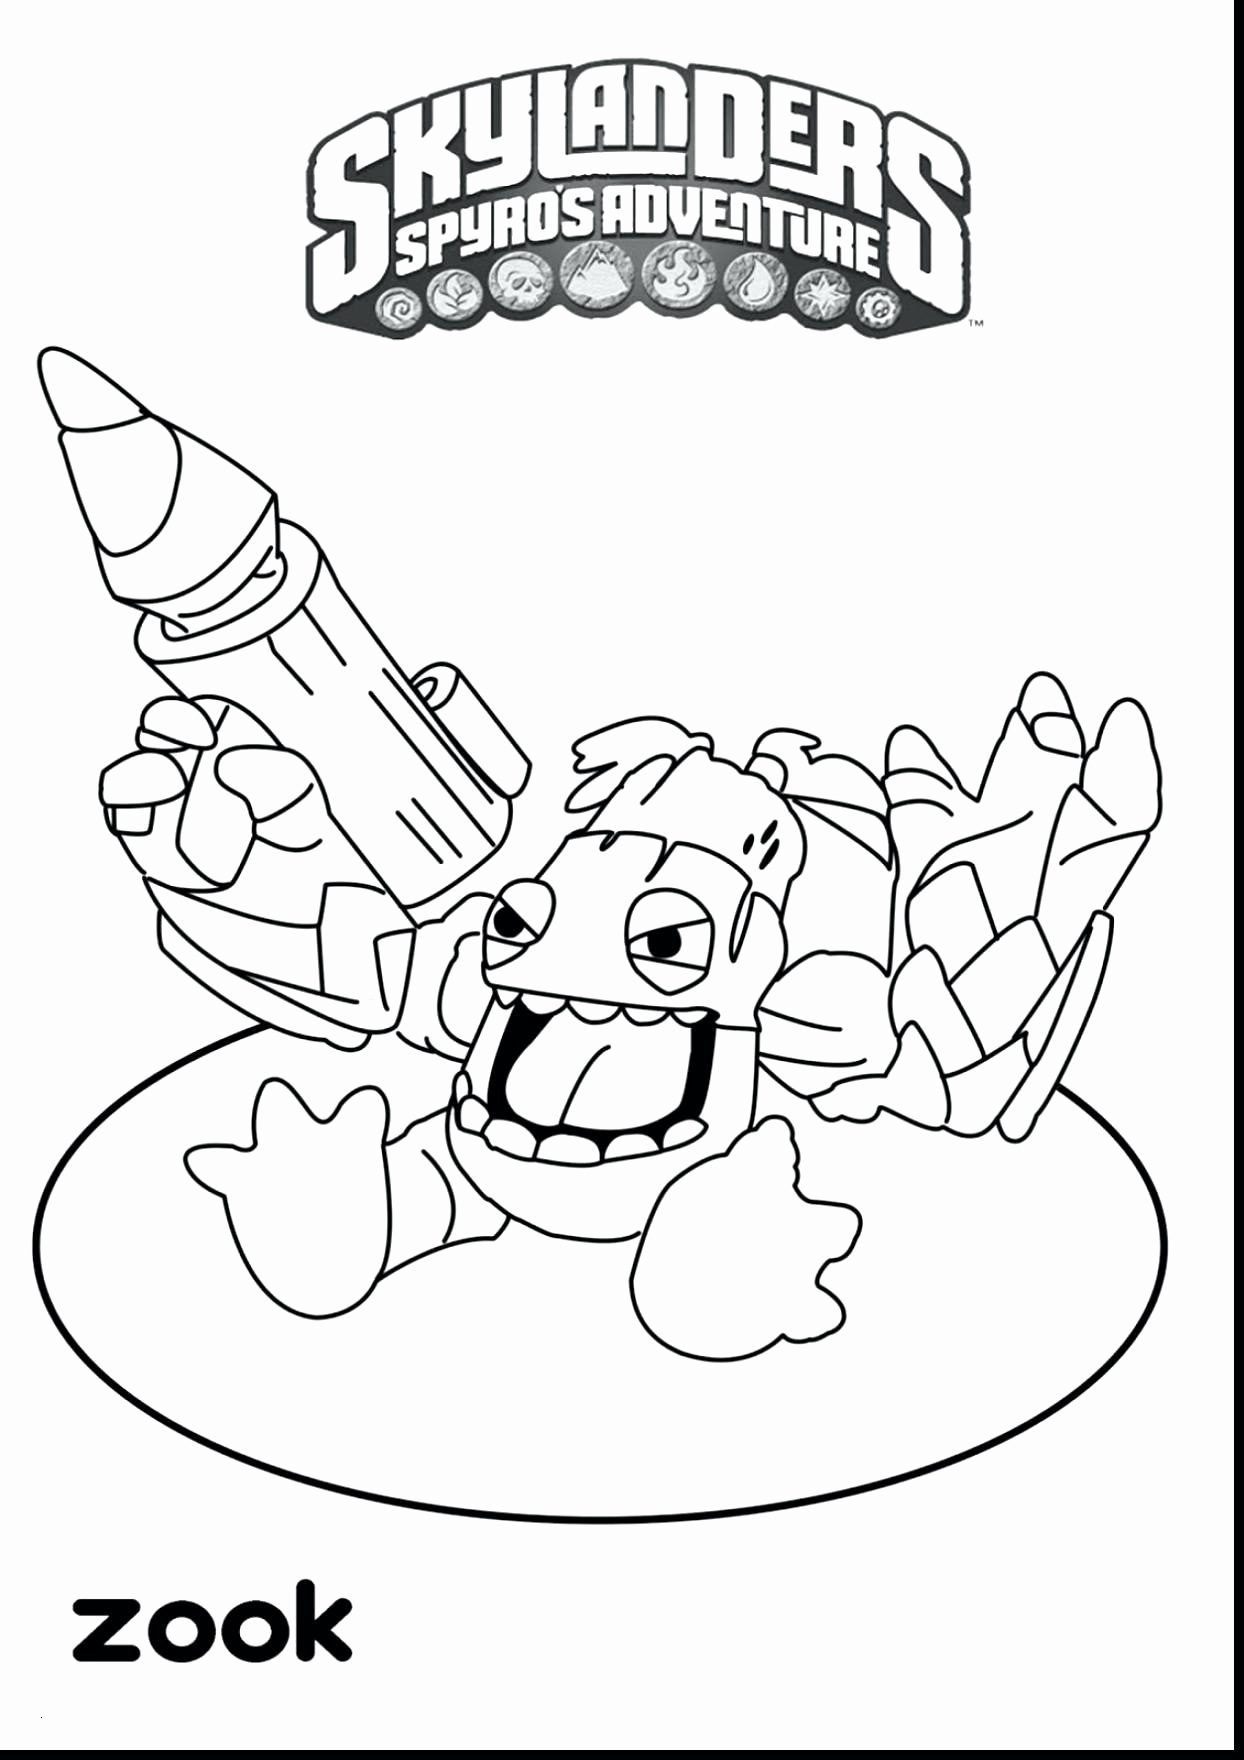 kid bible coloring pages Download-Slipknot Coloring Pages Fabulous Kids Bible Coloring Page Letramac 2-o